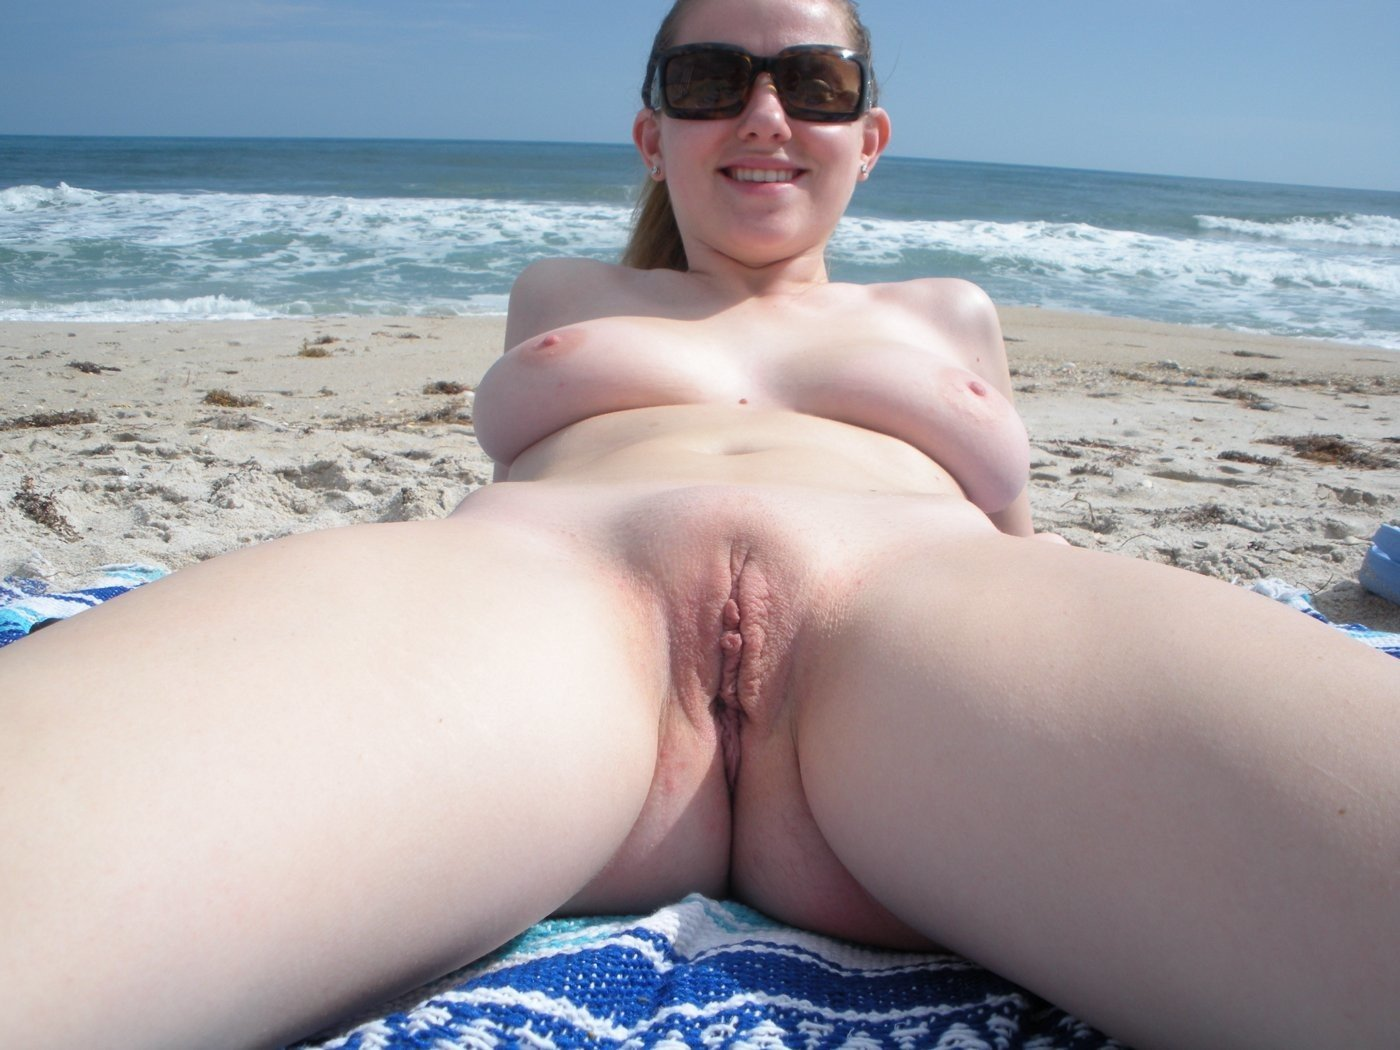 ex girlfriend nudist beach